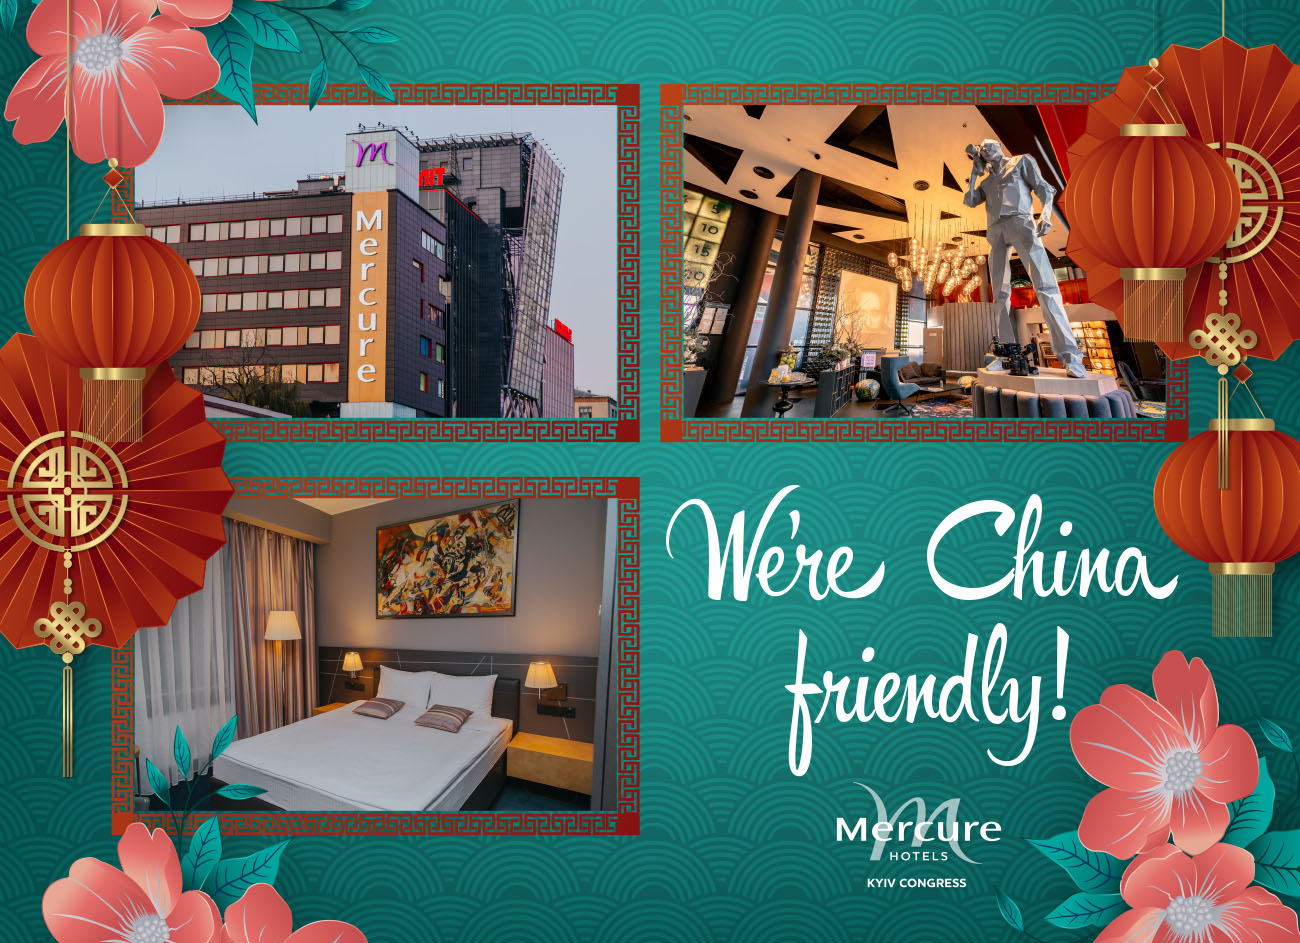 Mercure Kyiv Congress: We're China friendly!